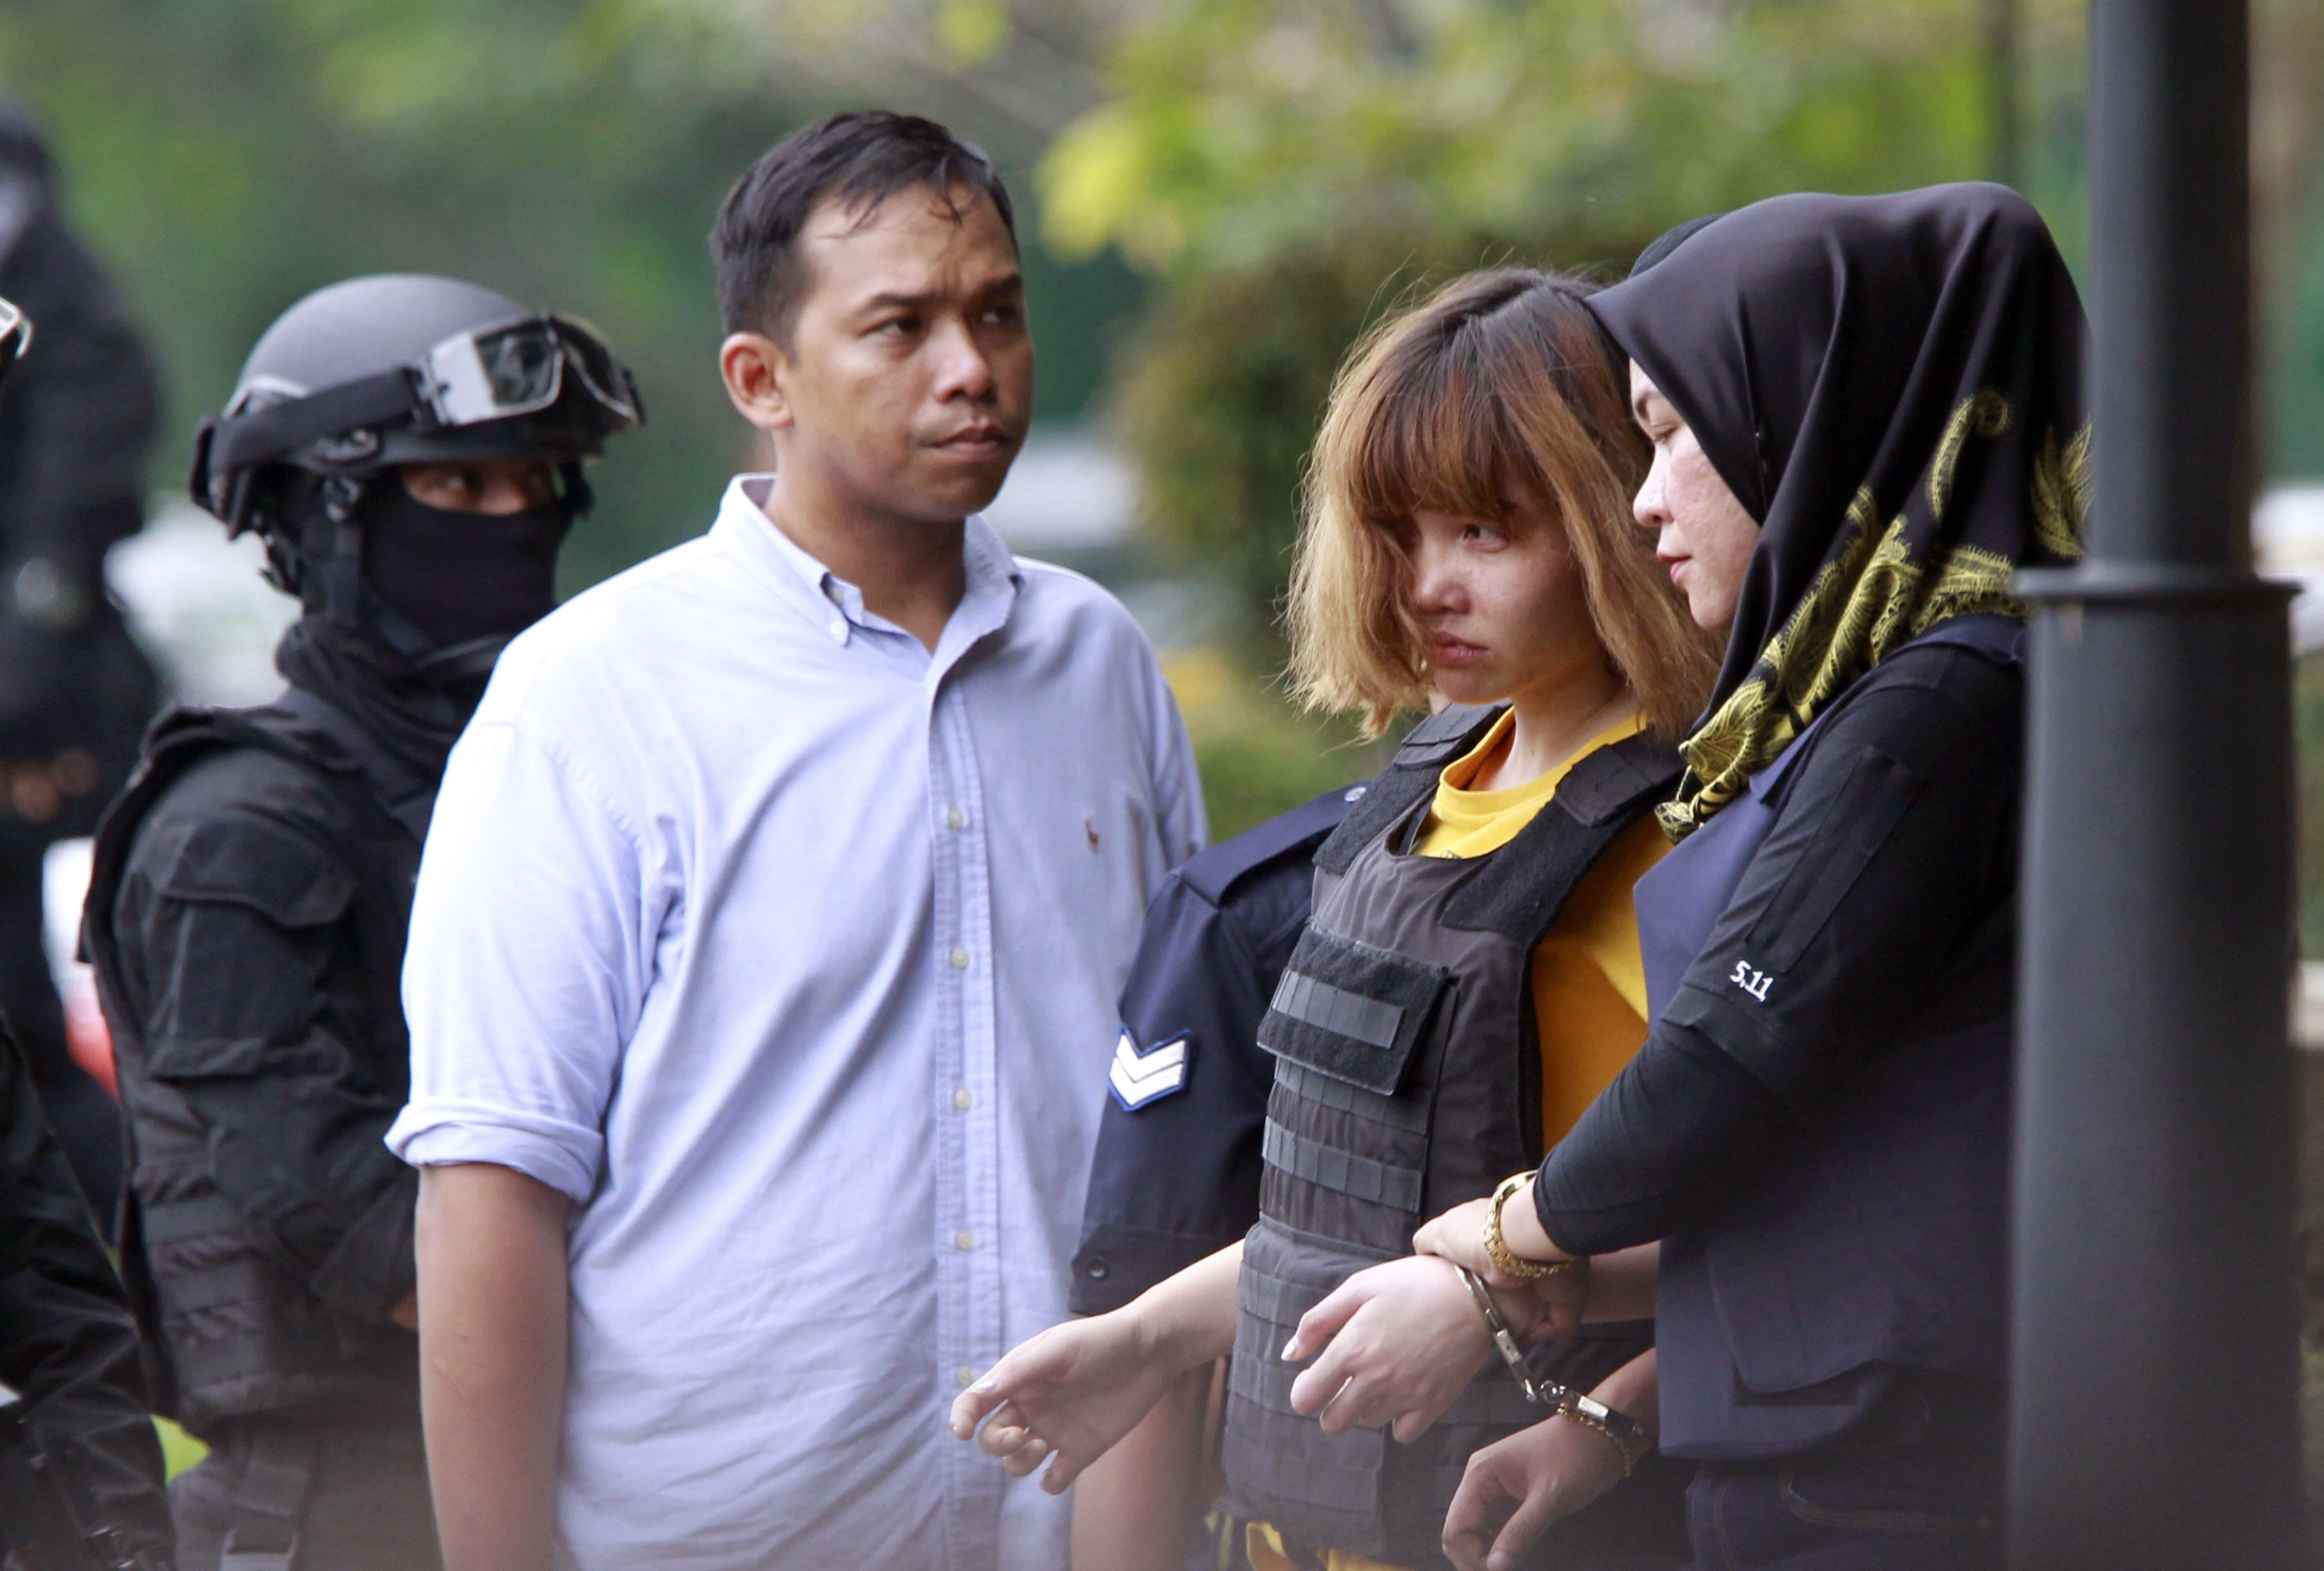 Kim Jong Nam Death Two Women Charged With Murder In Alleged Vx Nerve Attack